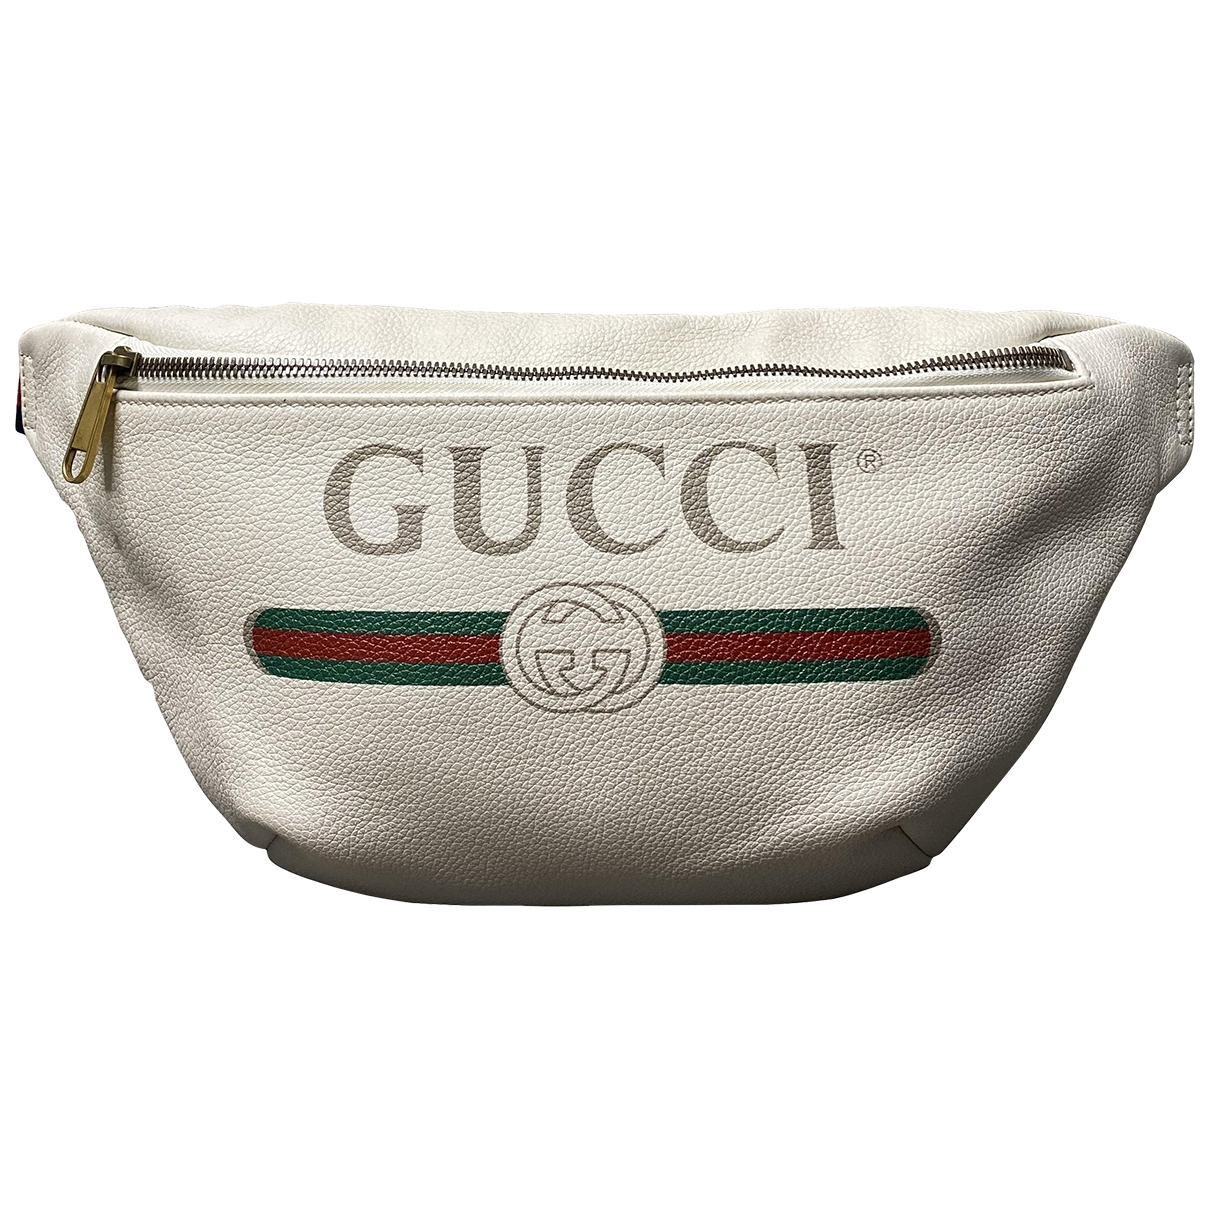 Gucci Coco capitán White Leather Clutch bag for Women \N